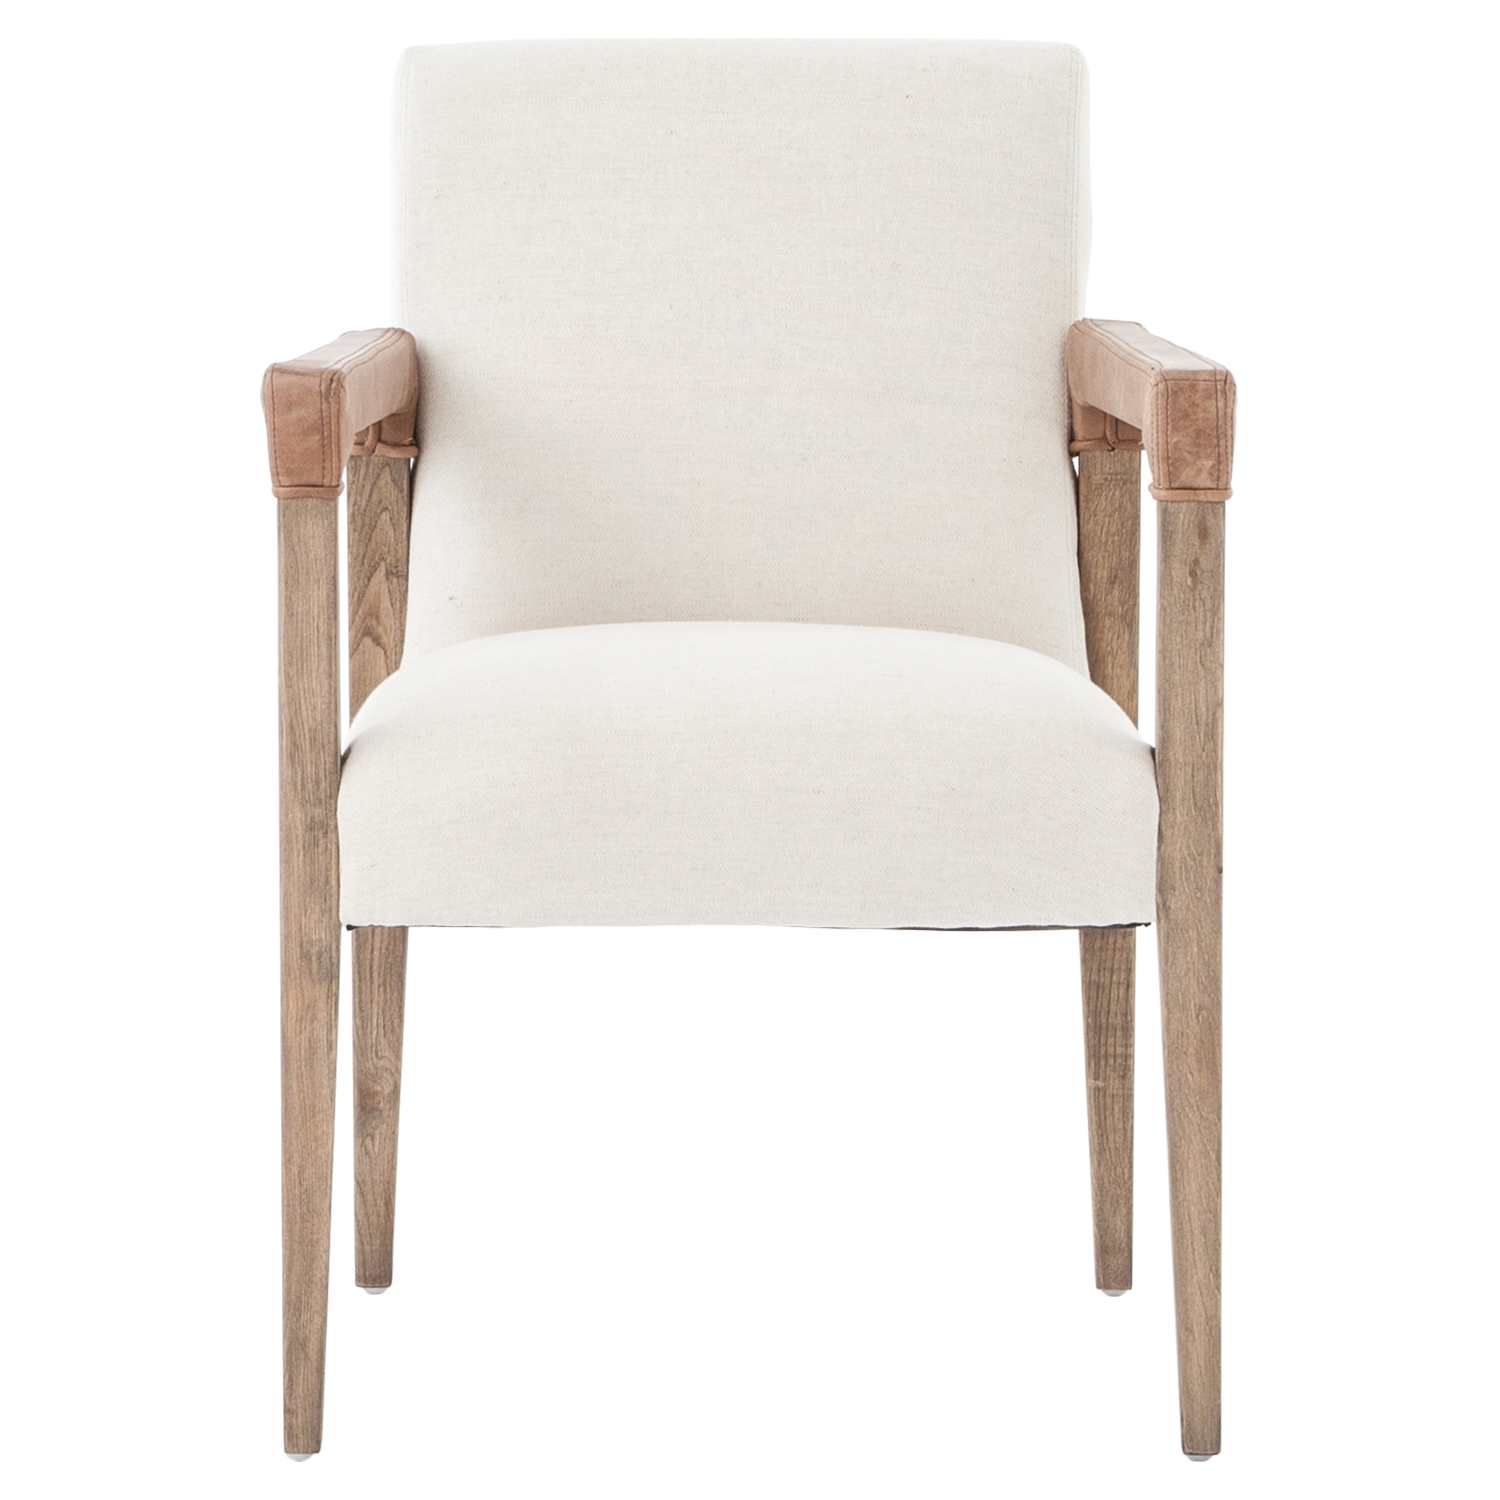 Jolie Modern French Country White Linen Leather Oak Dining Arm Chair